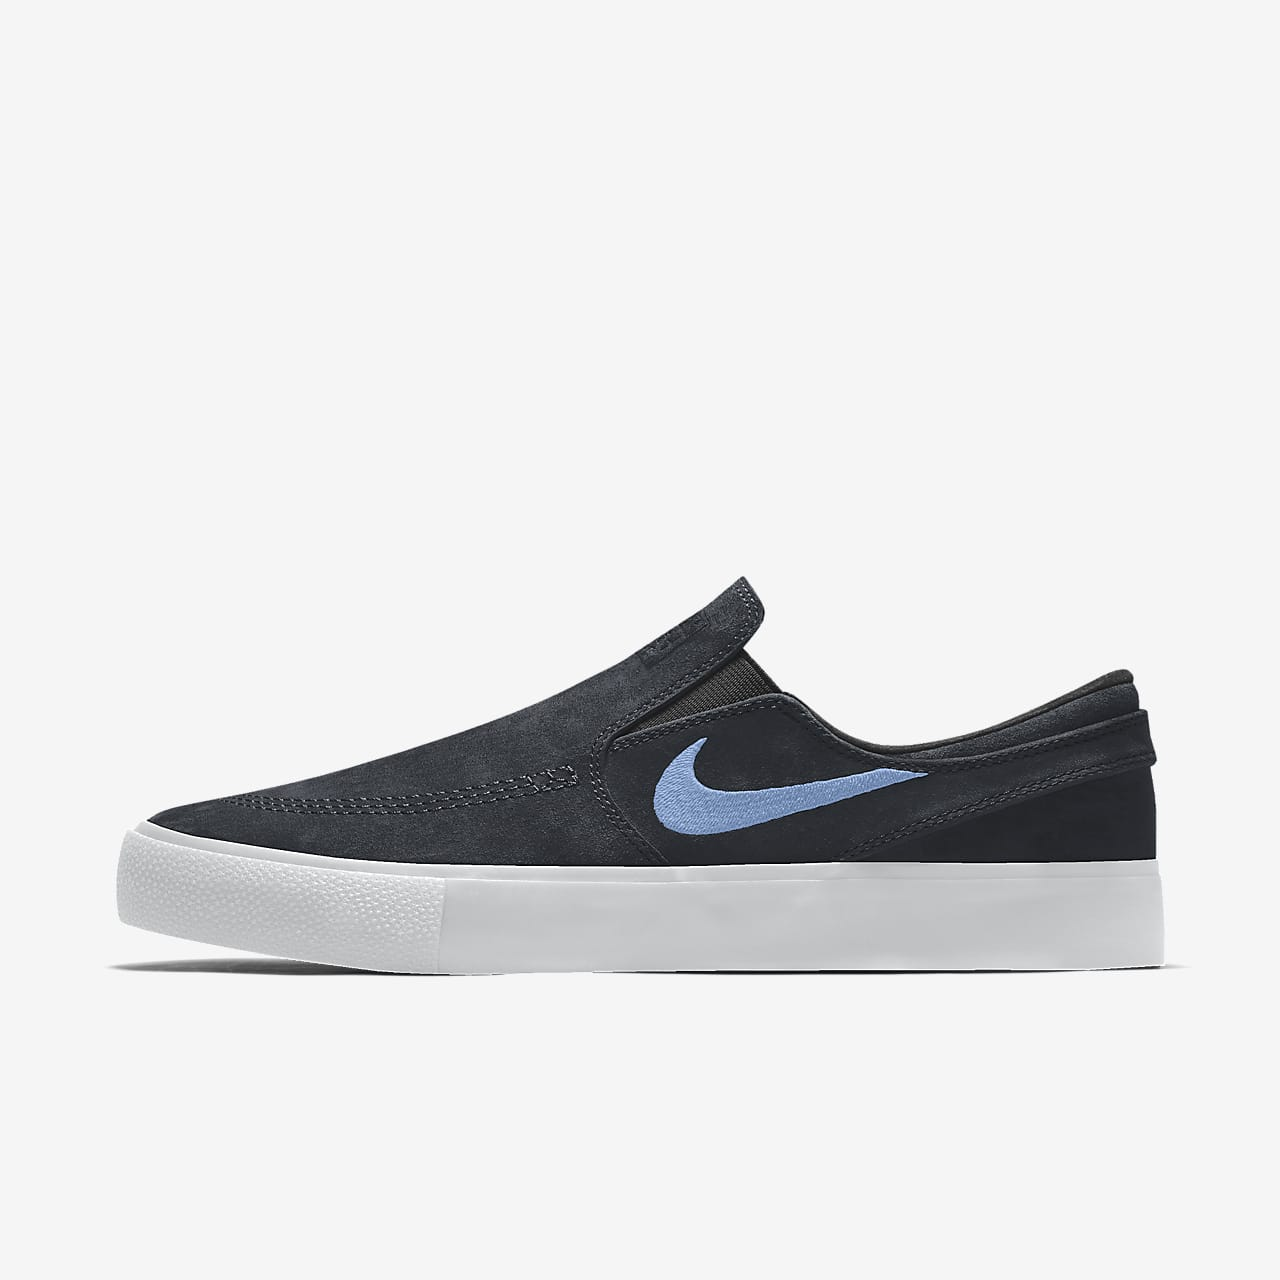 Nike SB Zoom Stefan Janoski RM By You Custom Skate Shoe